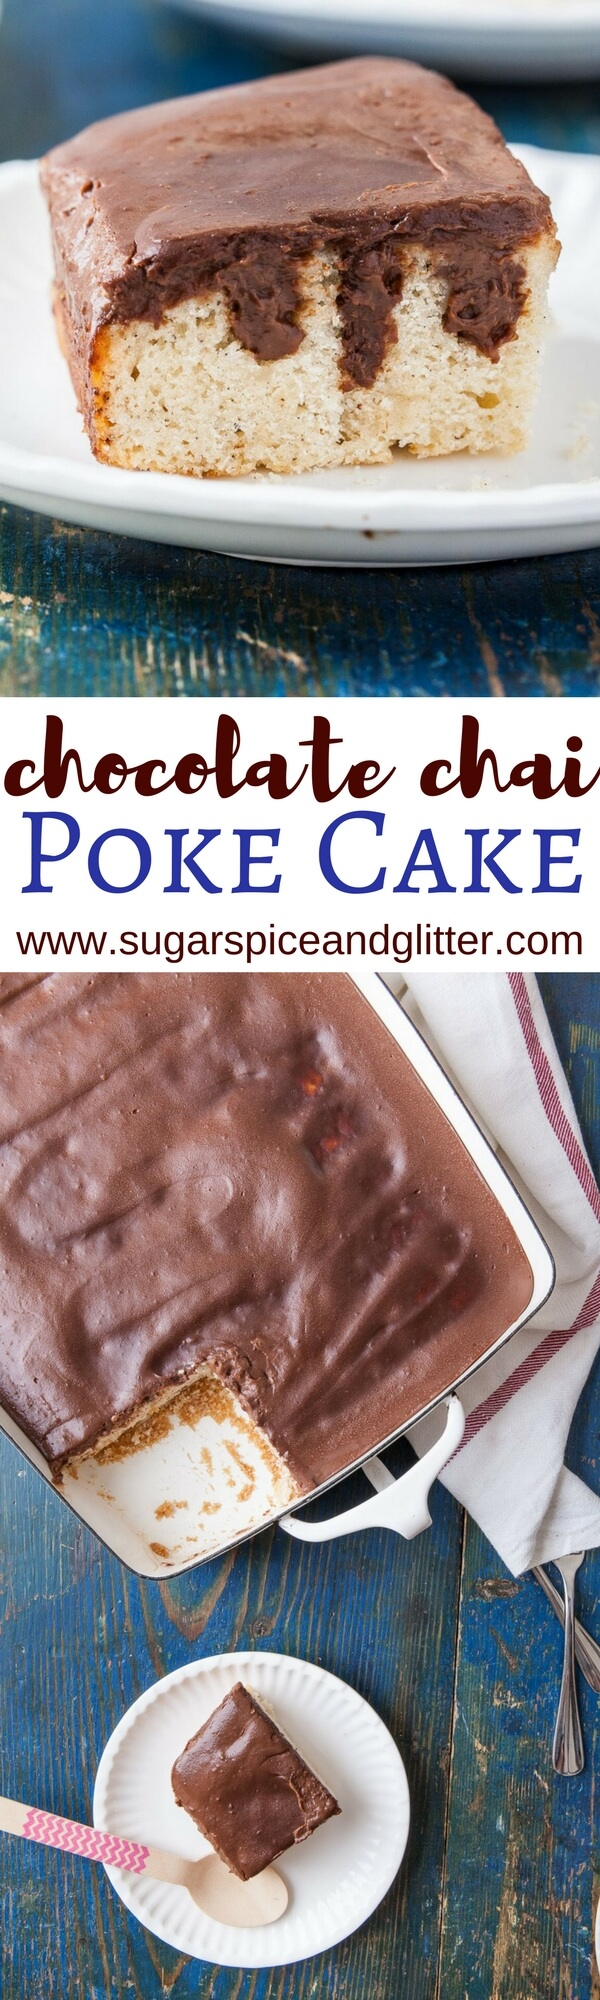 If you love unique chai recipes you're going to love this Chocolate Chai Poke Cake recipe with easy chocolate ganache and spiced vanilla cake. Chocolate Cardamom Poke Cake